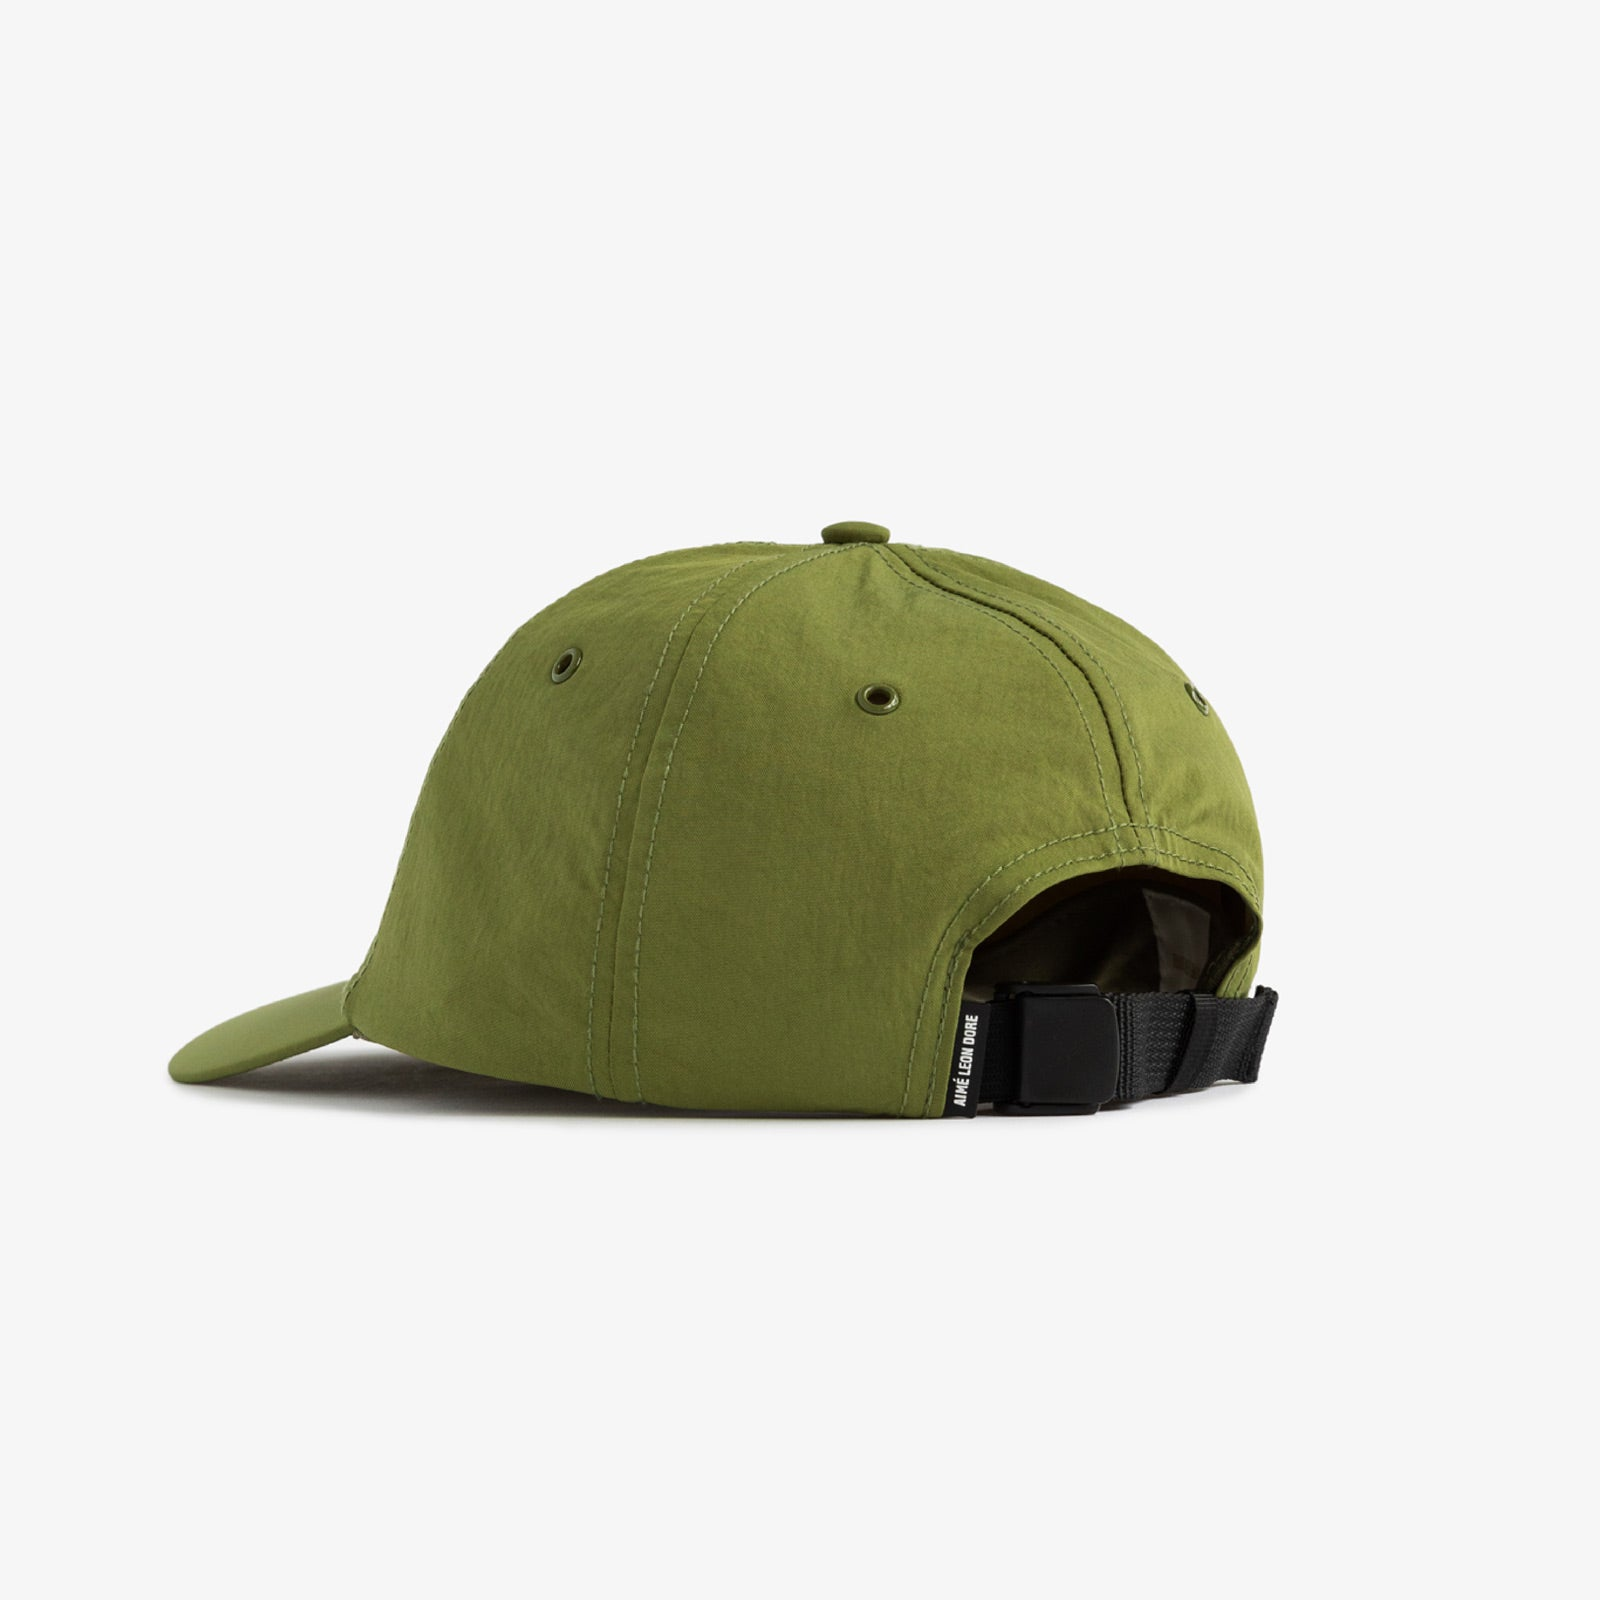 Nylon Tech Hat